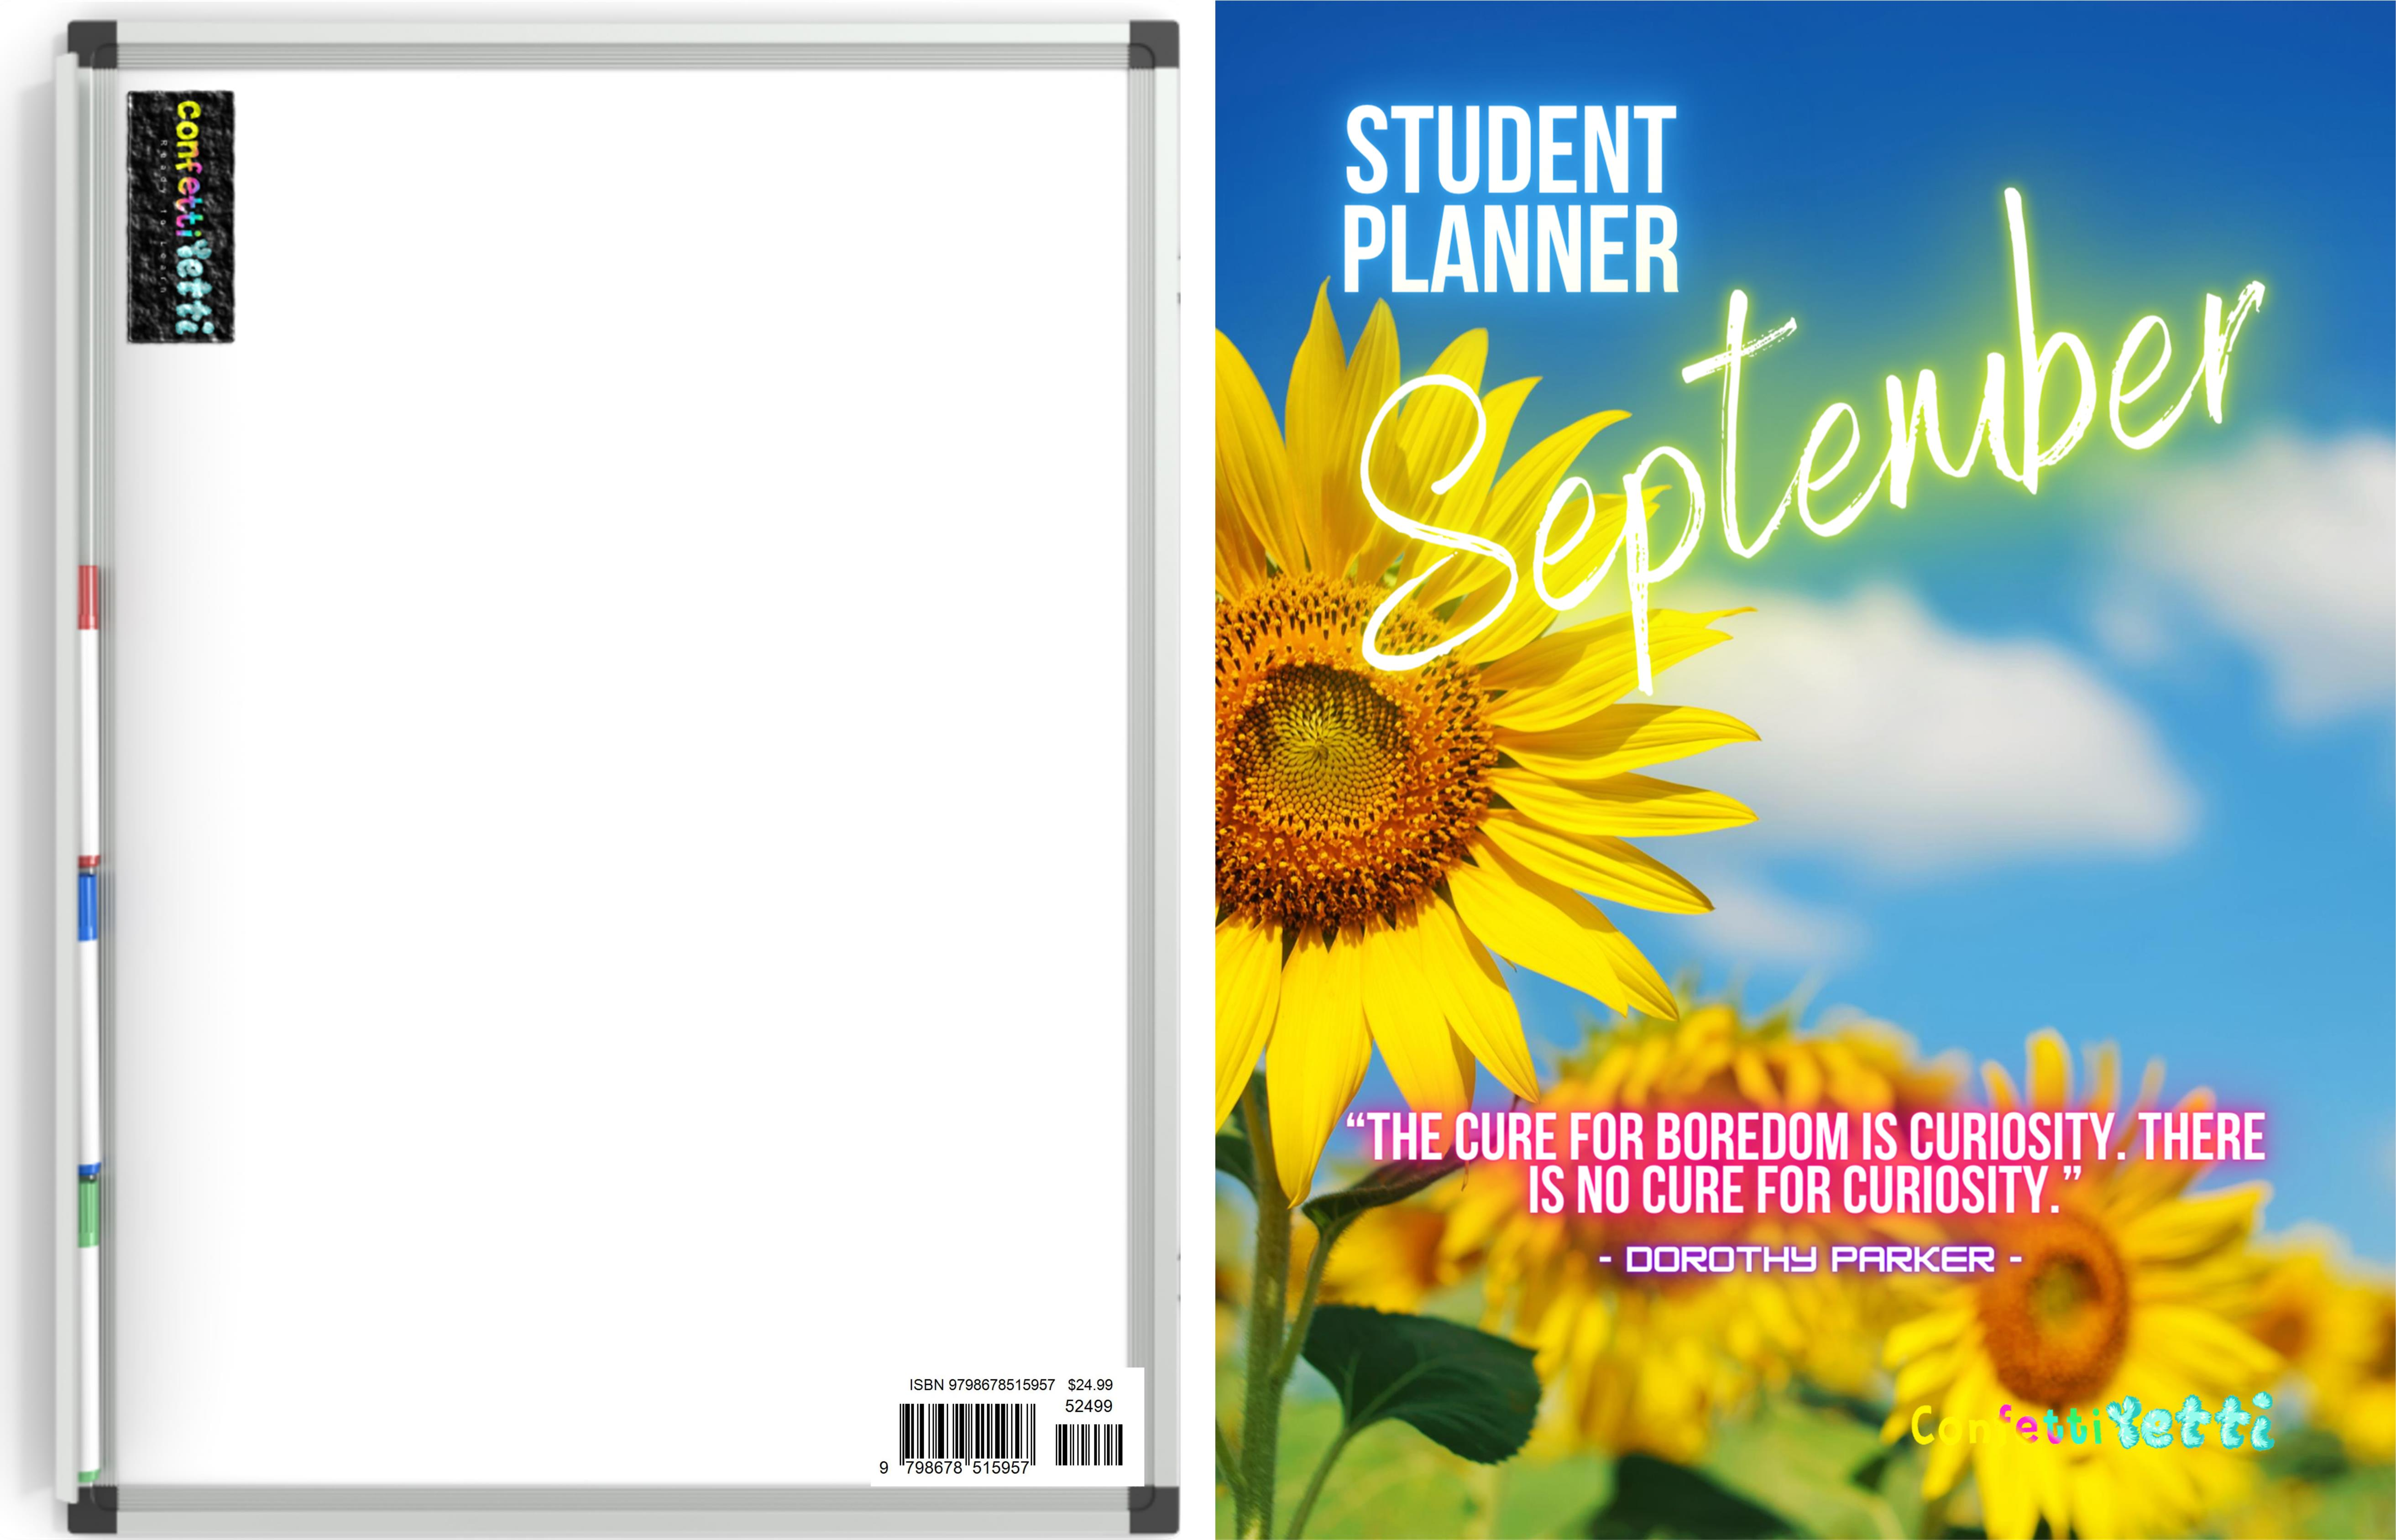 September 2020 Student HomeSchool Planner cover image